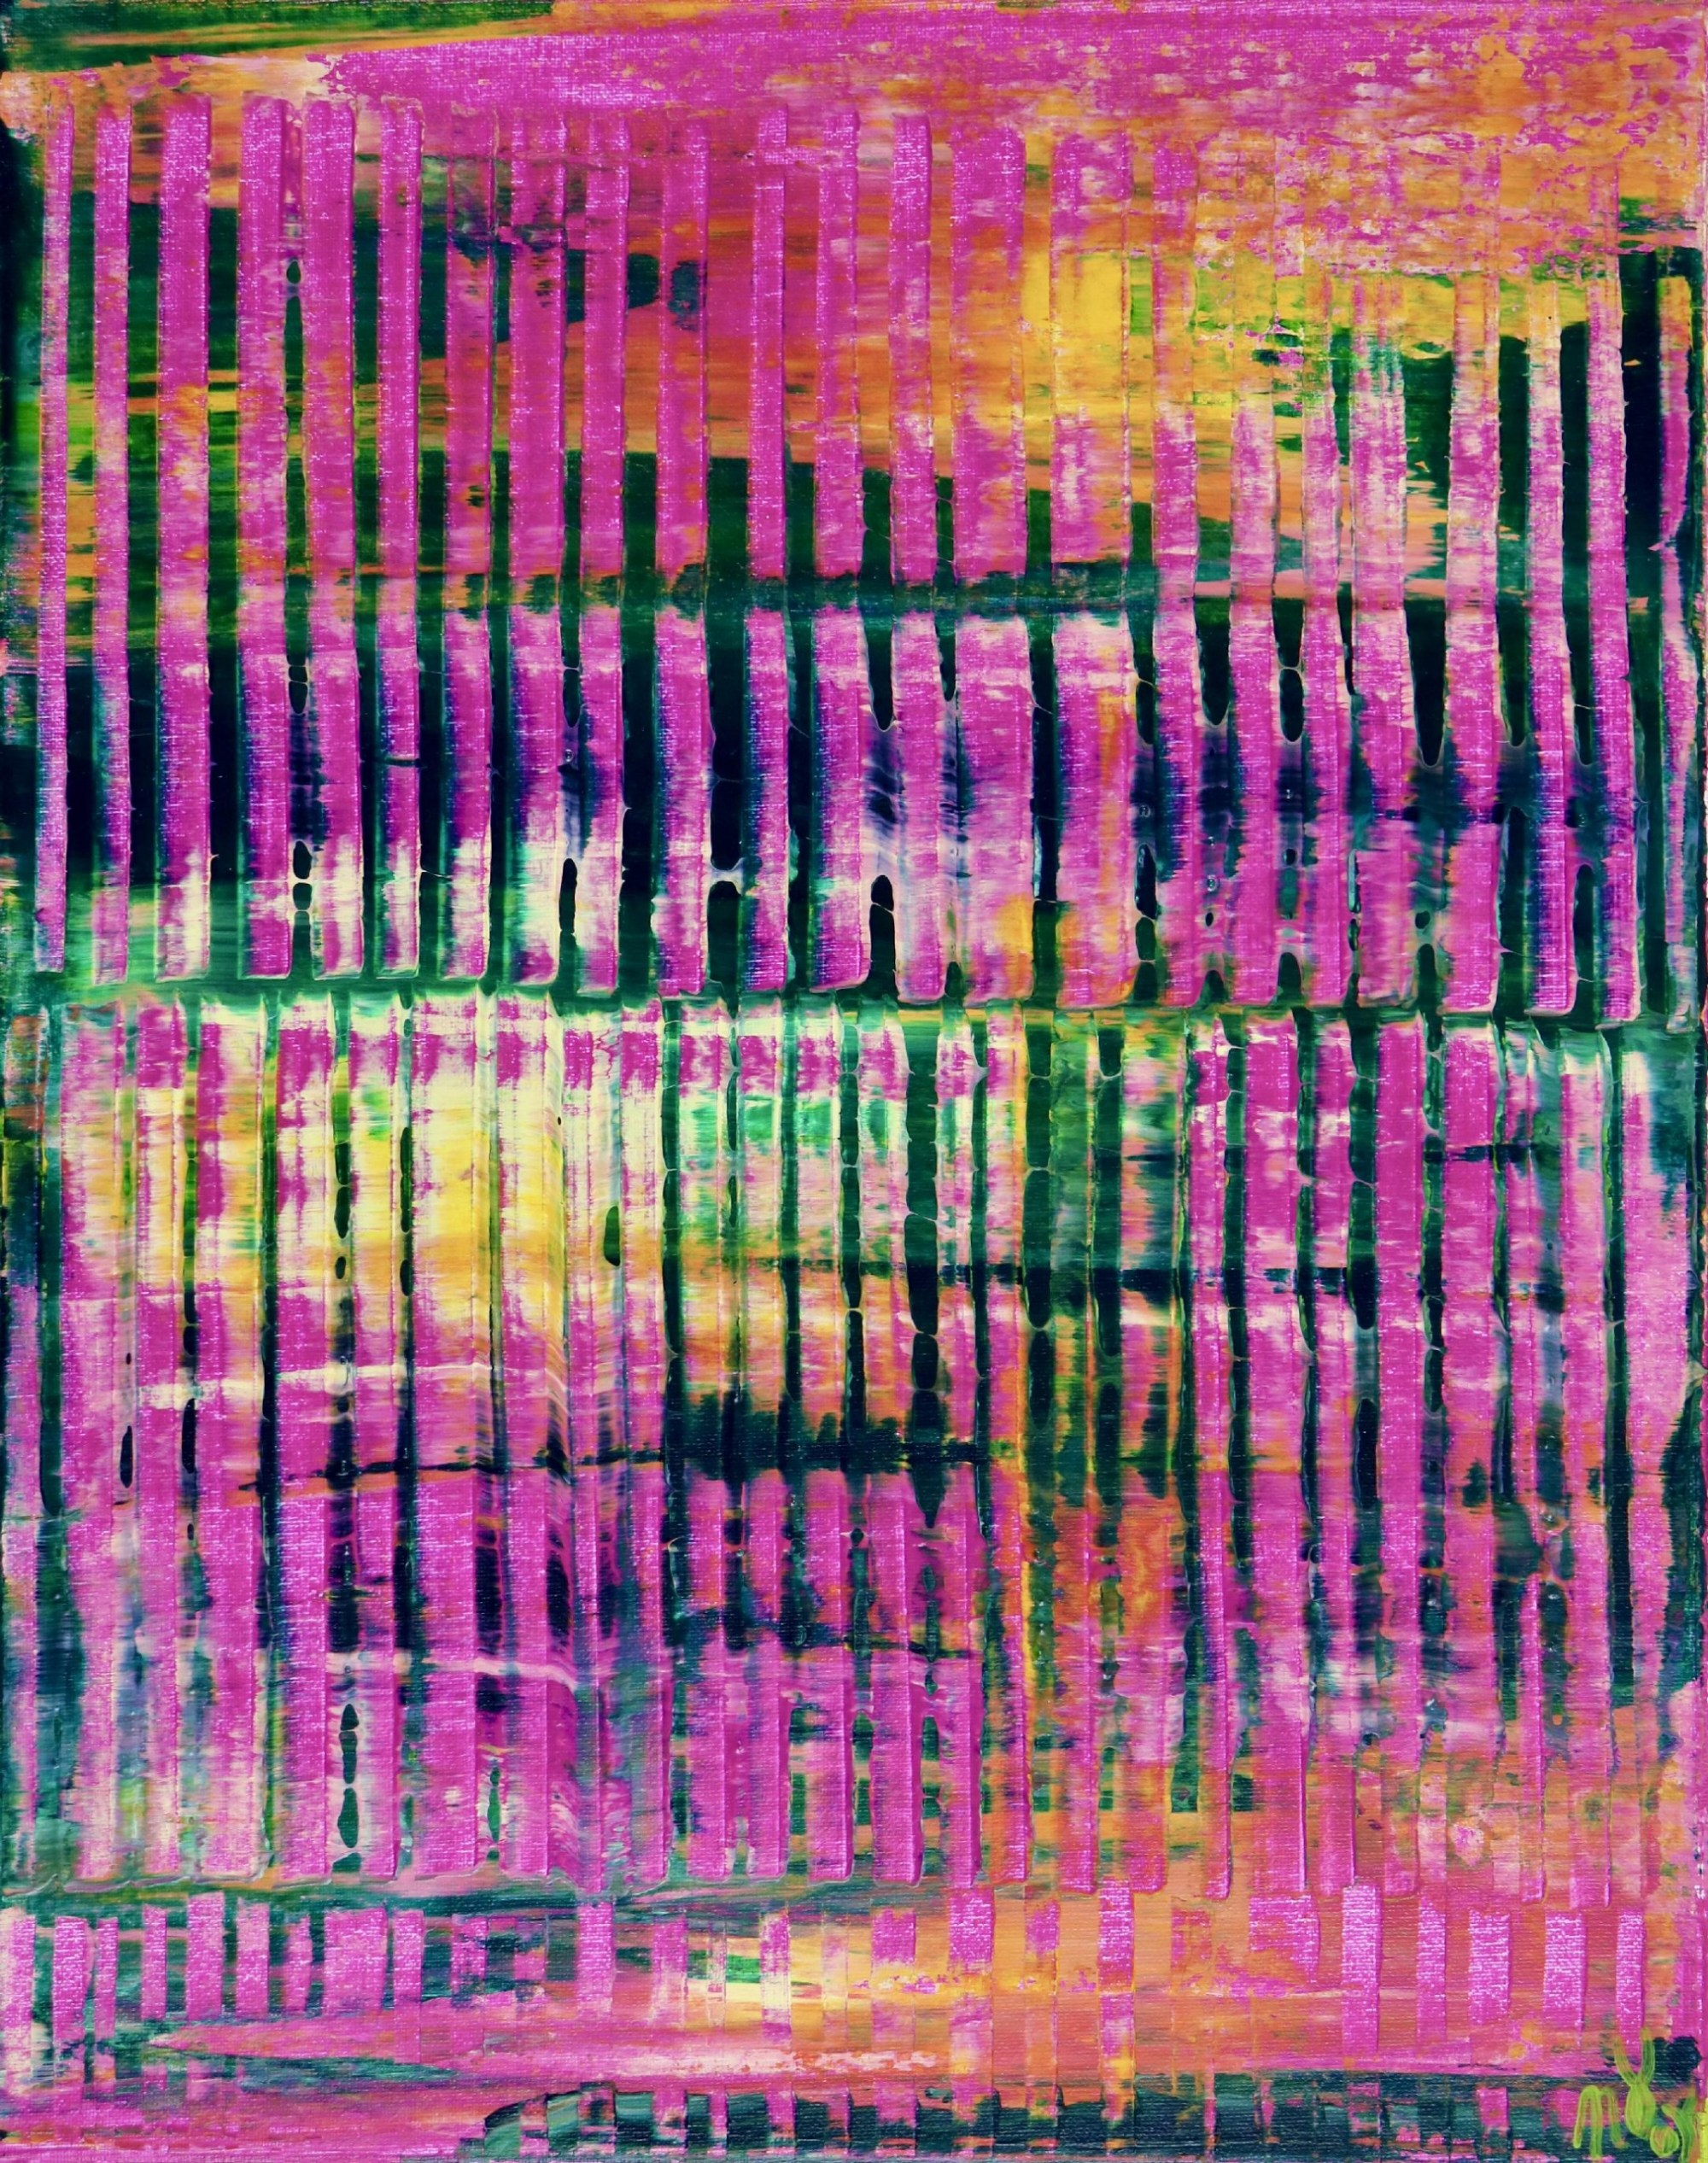 Full Canvas - Pink Refractions (Green Textures) 2 (2020) by Nestor Toro